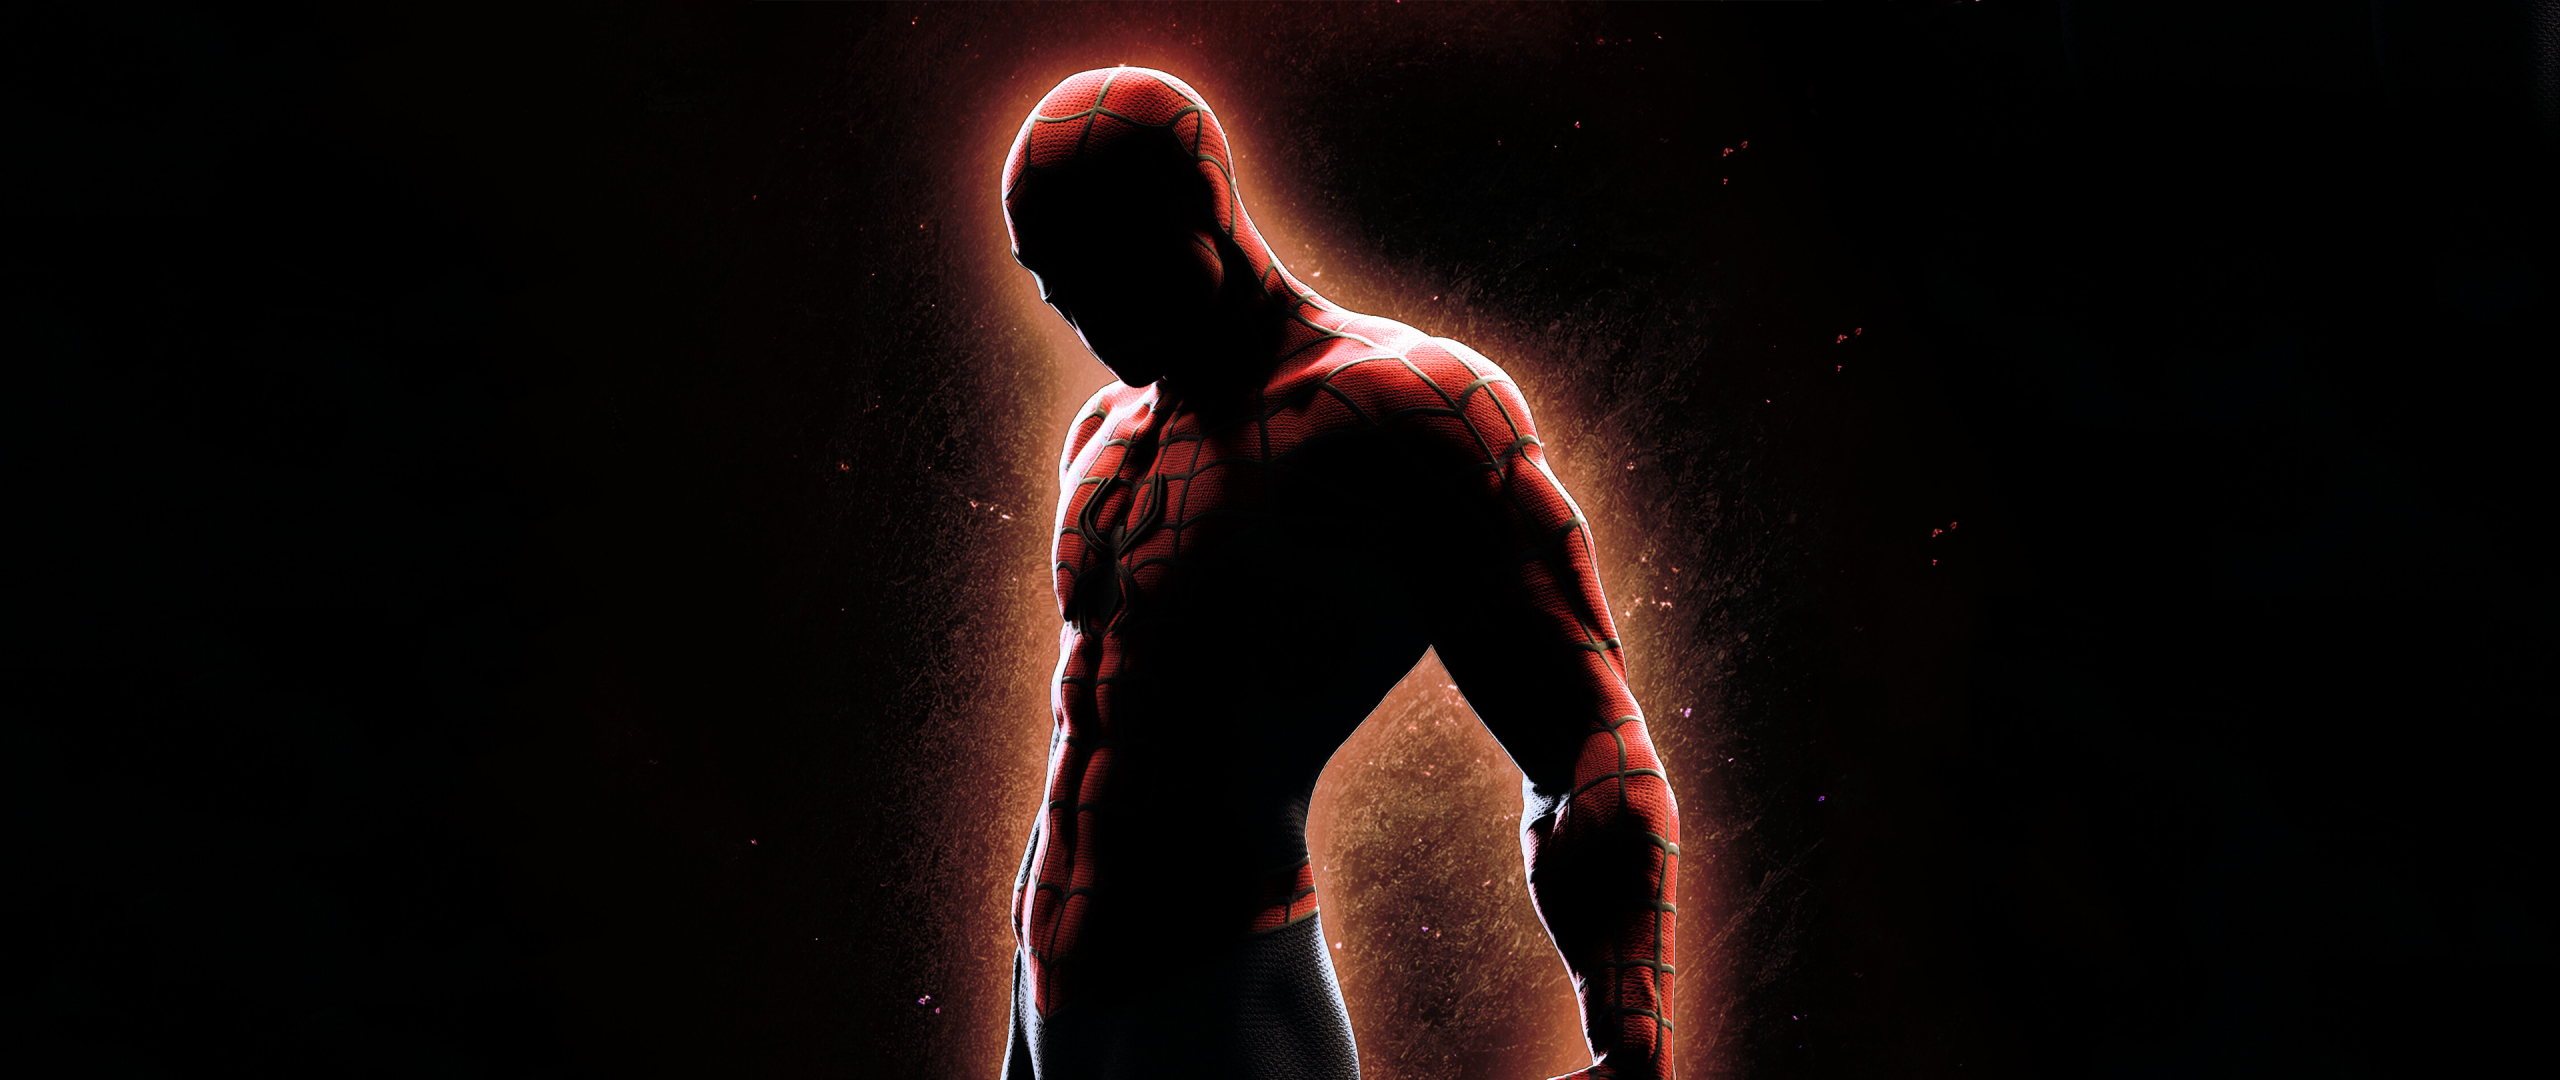 2560x1080 Spider Man Cool 4k Black Background 2560x1080 Resolution Wallpaper Hd Superheroes 4k Wallpapers Images Photos And Background